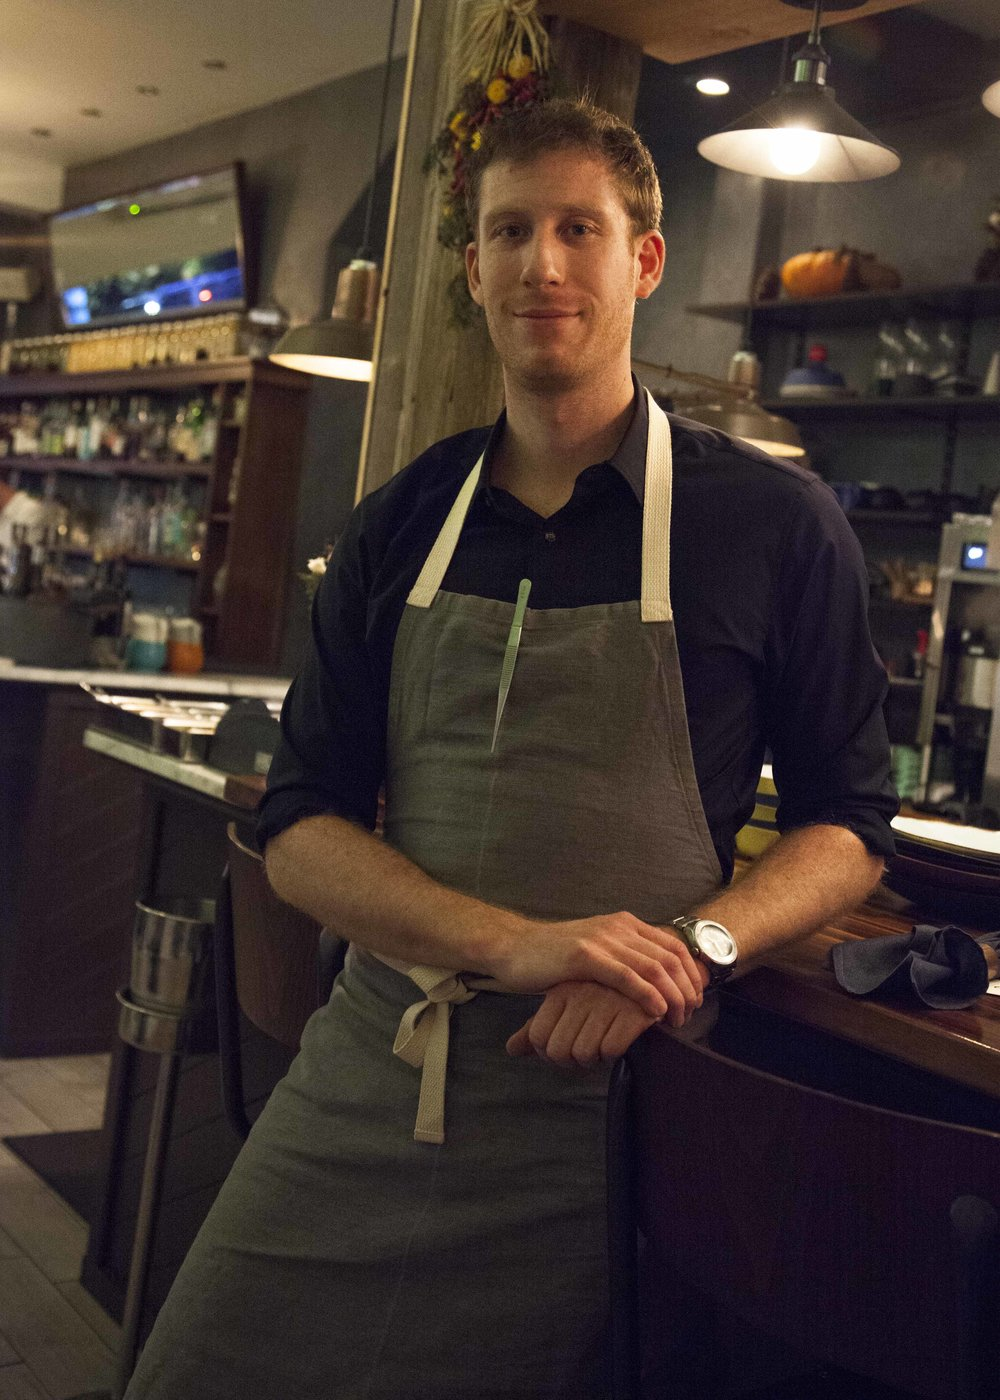 Chef-owner Greg Baxtrom at the counter of his restaurant, Olmsted, in Prospect Heights.